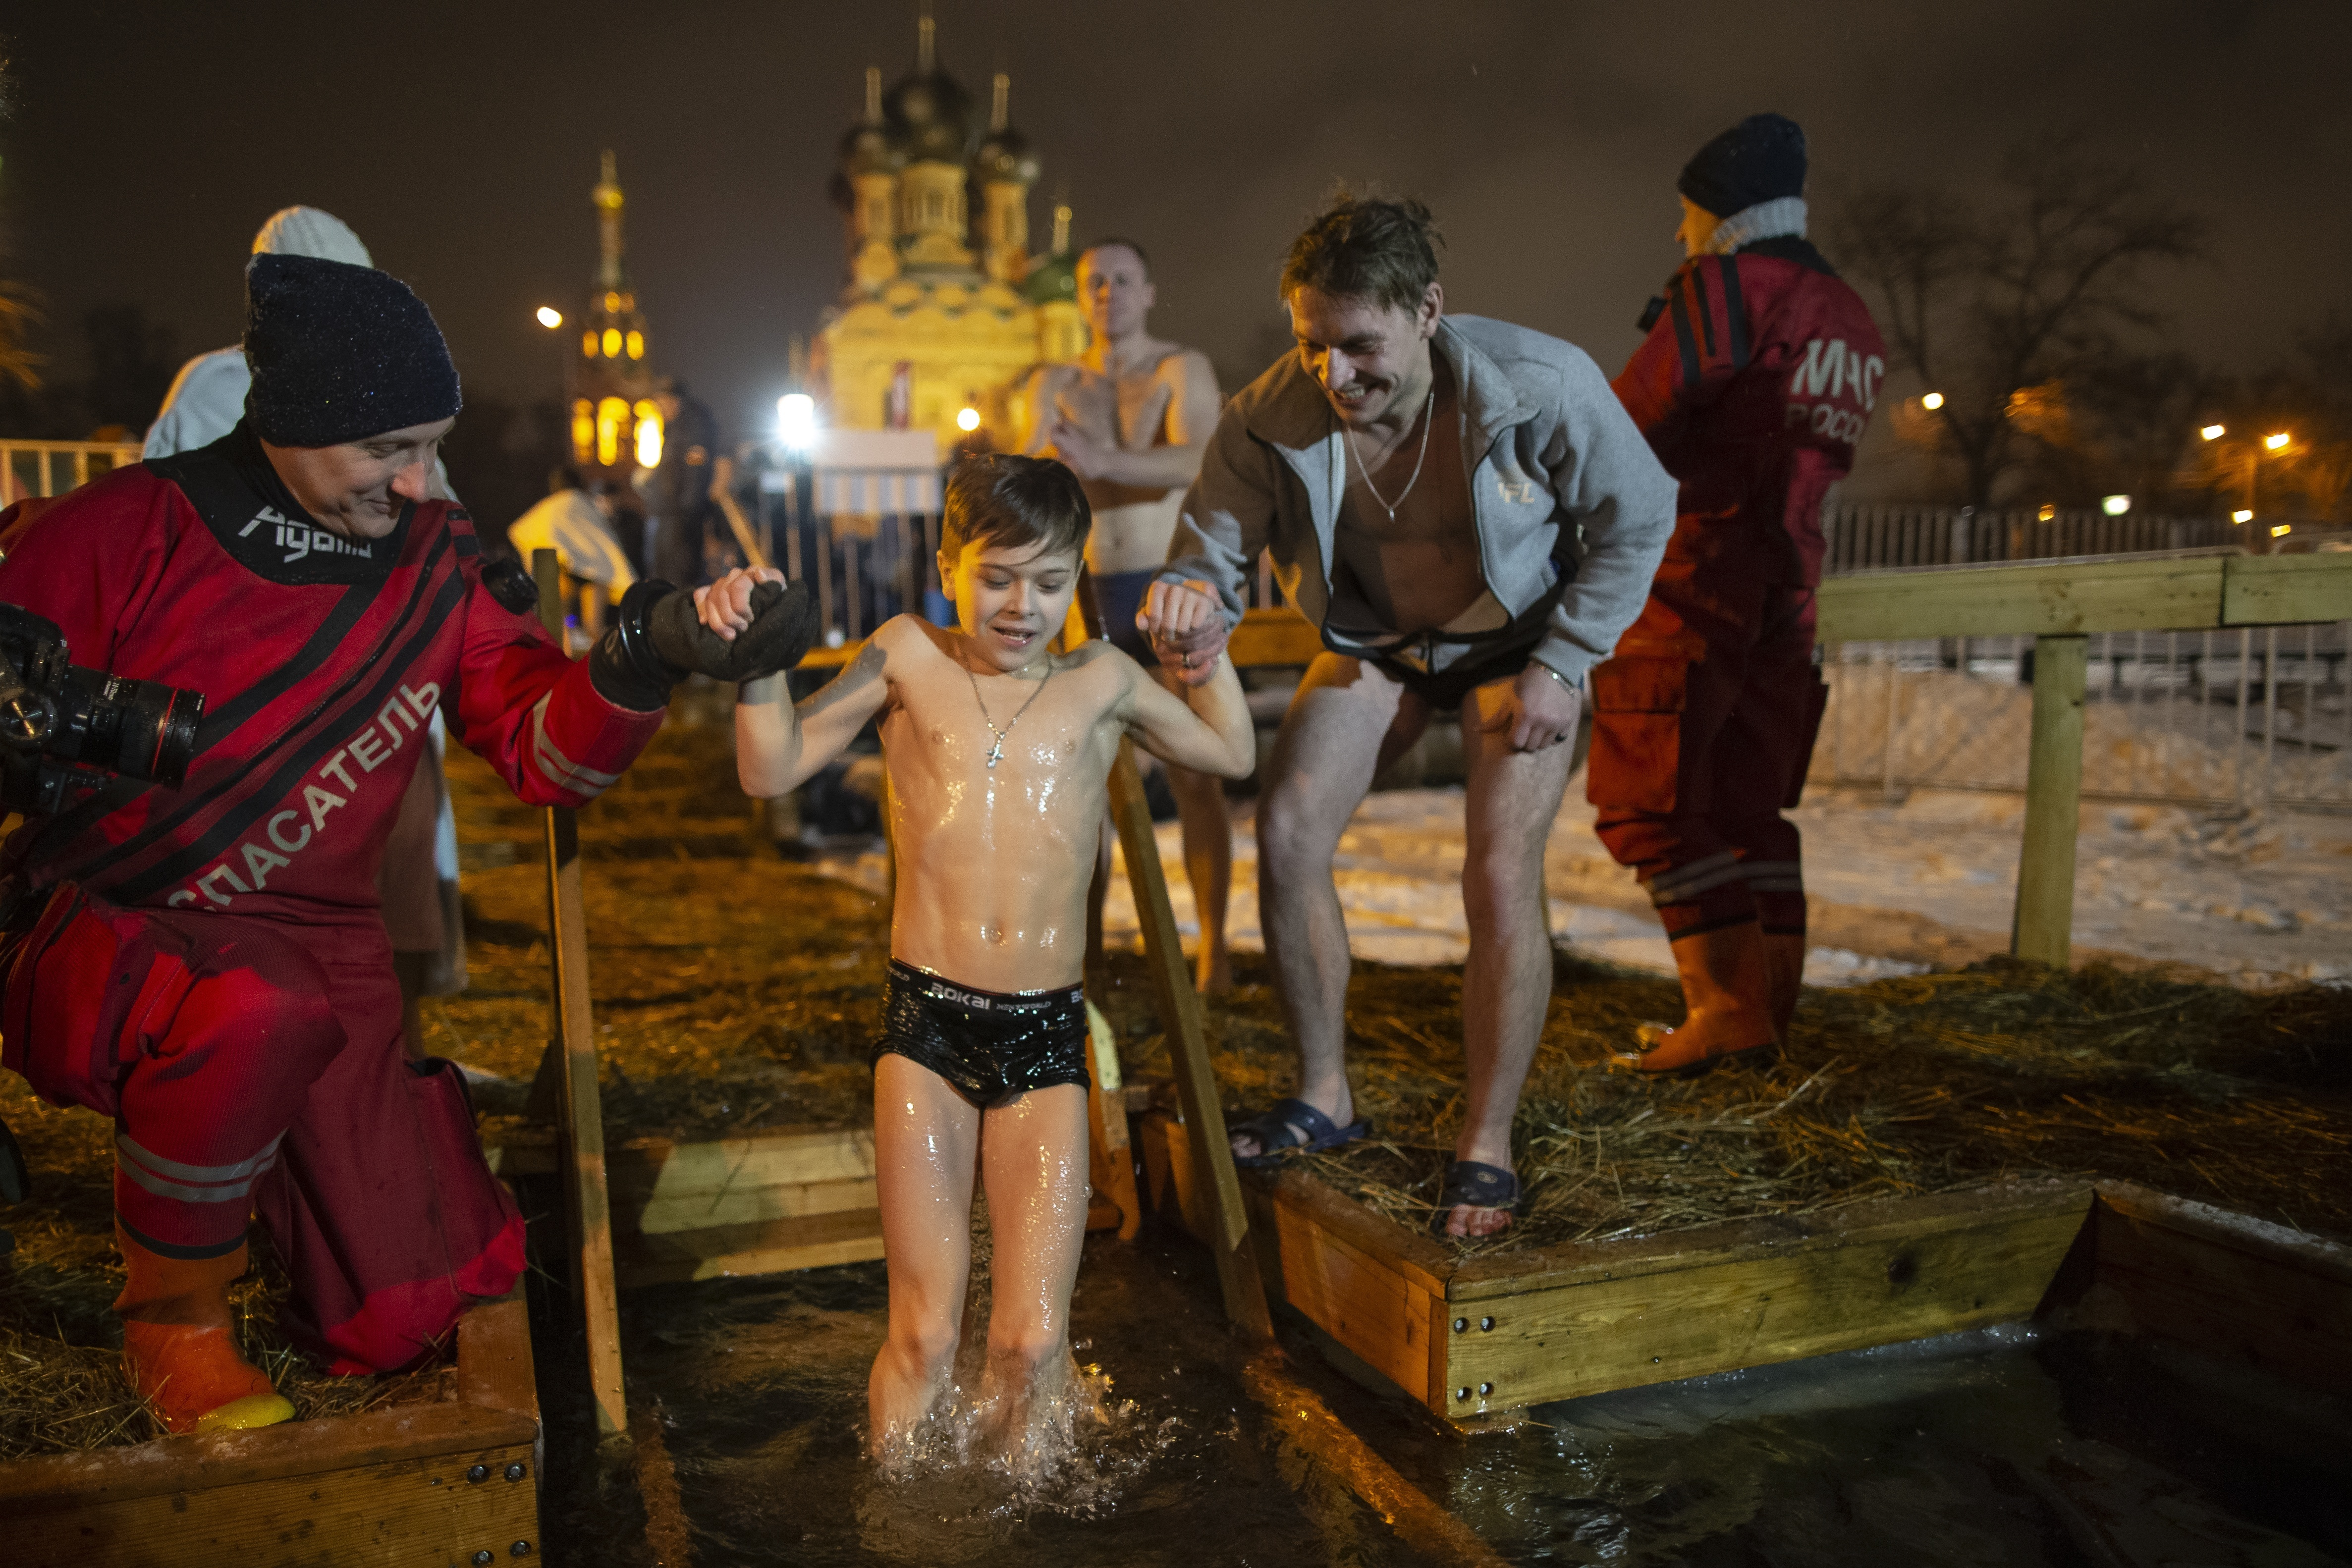 a974c3988 Russians plunge into icy waters to mark feast of Epiphany - General ...